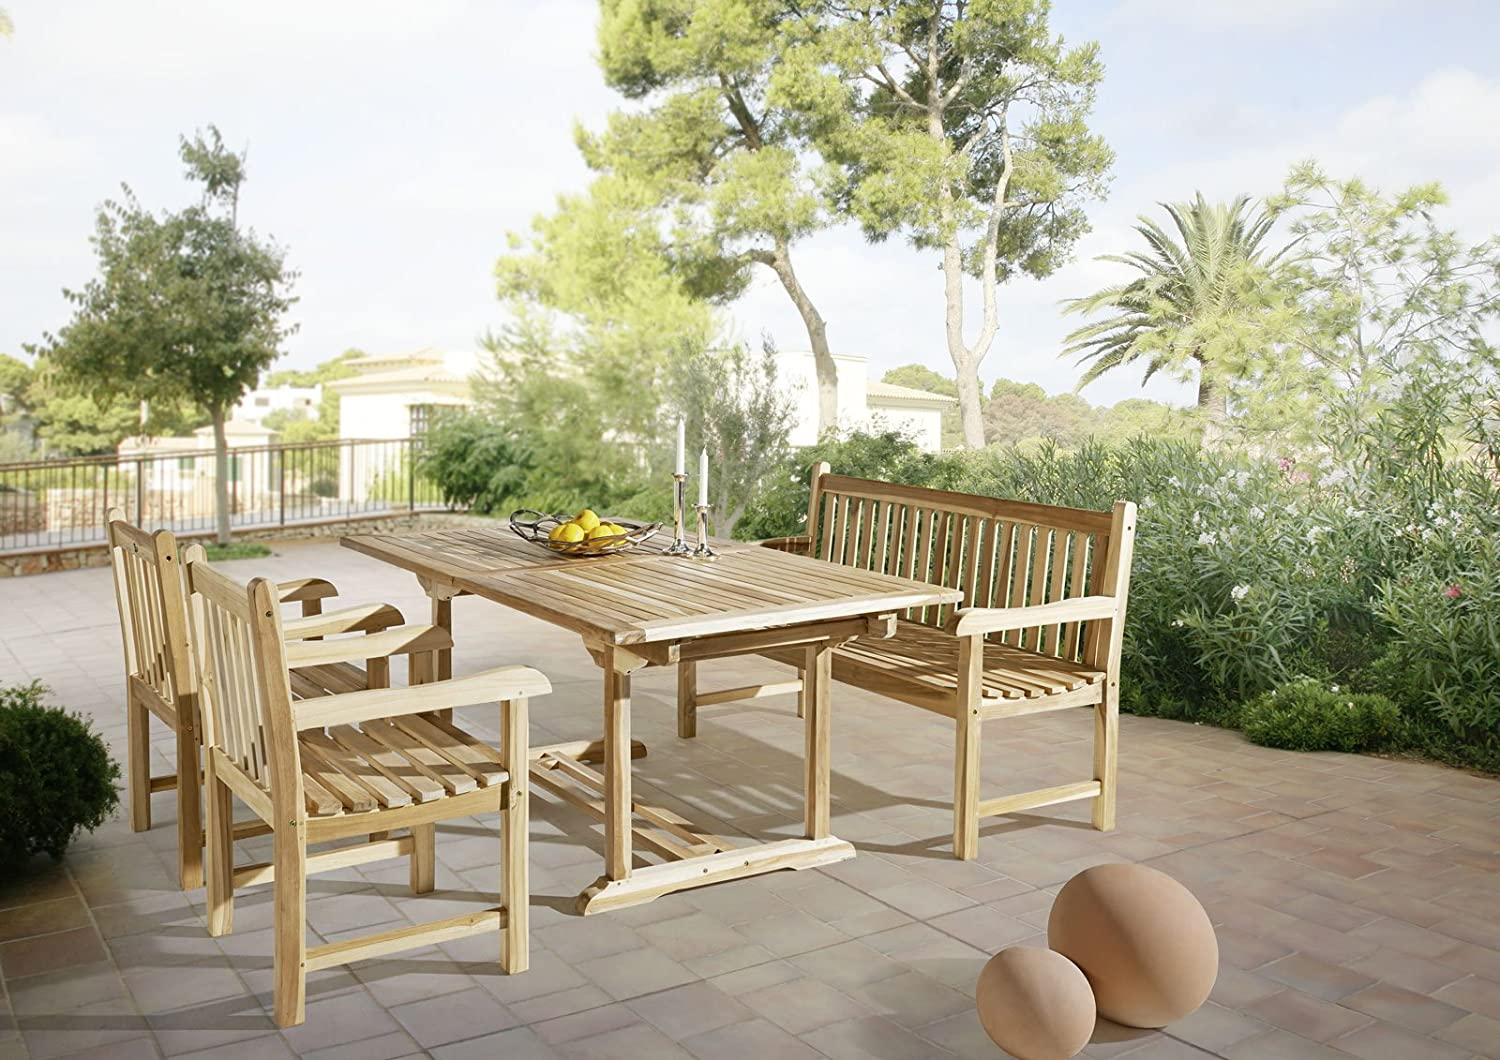 sam gartengruppe 4 teilig gartenm bel aus teak holz mit 2 x garten sessel und 1 x garten. Black Bedroom Furniture Sets. Home Design Ideas